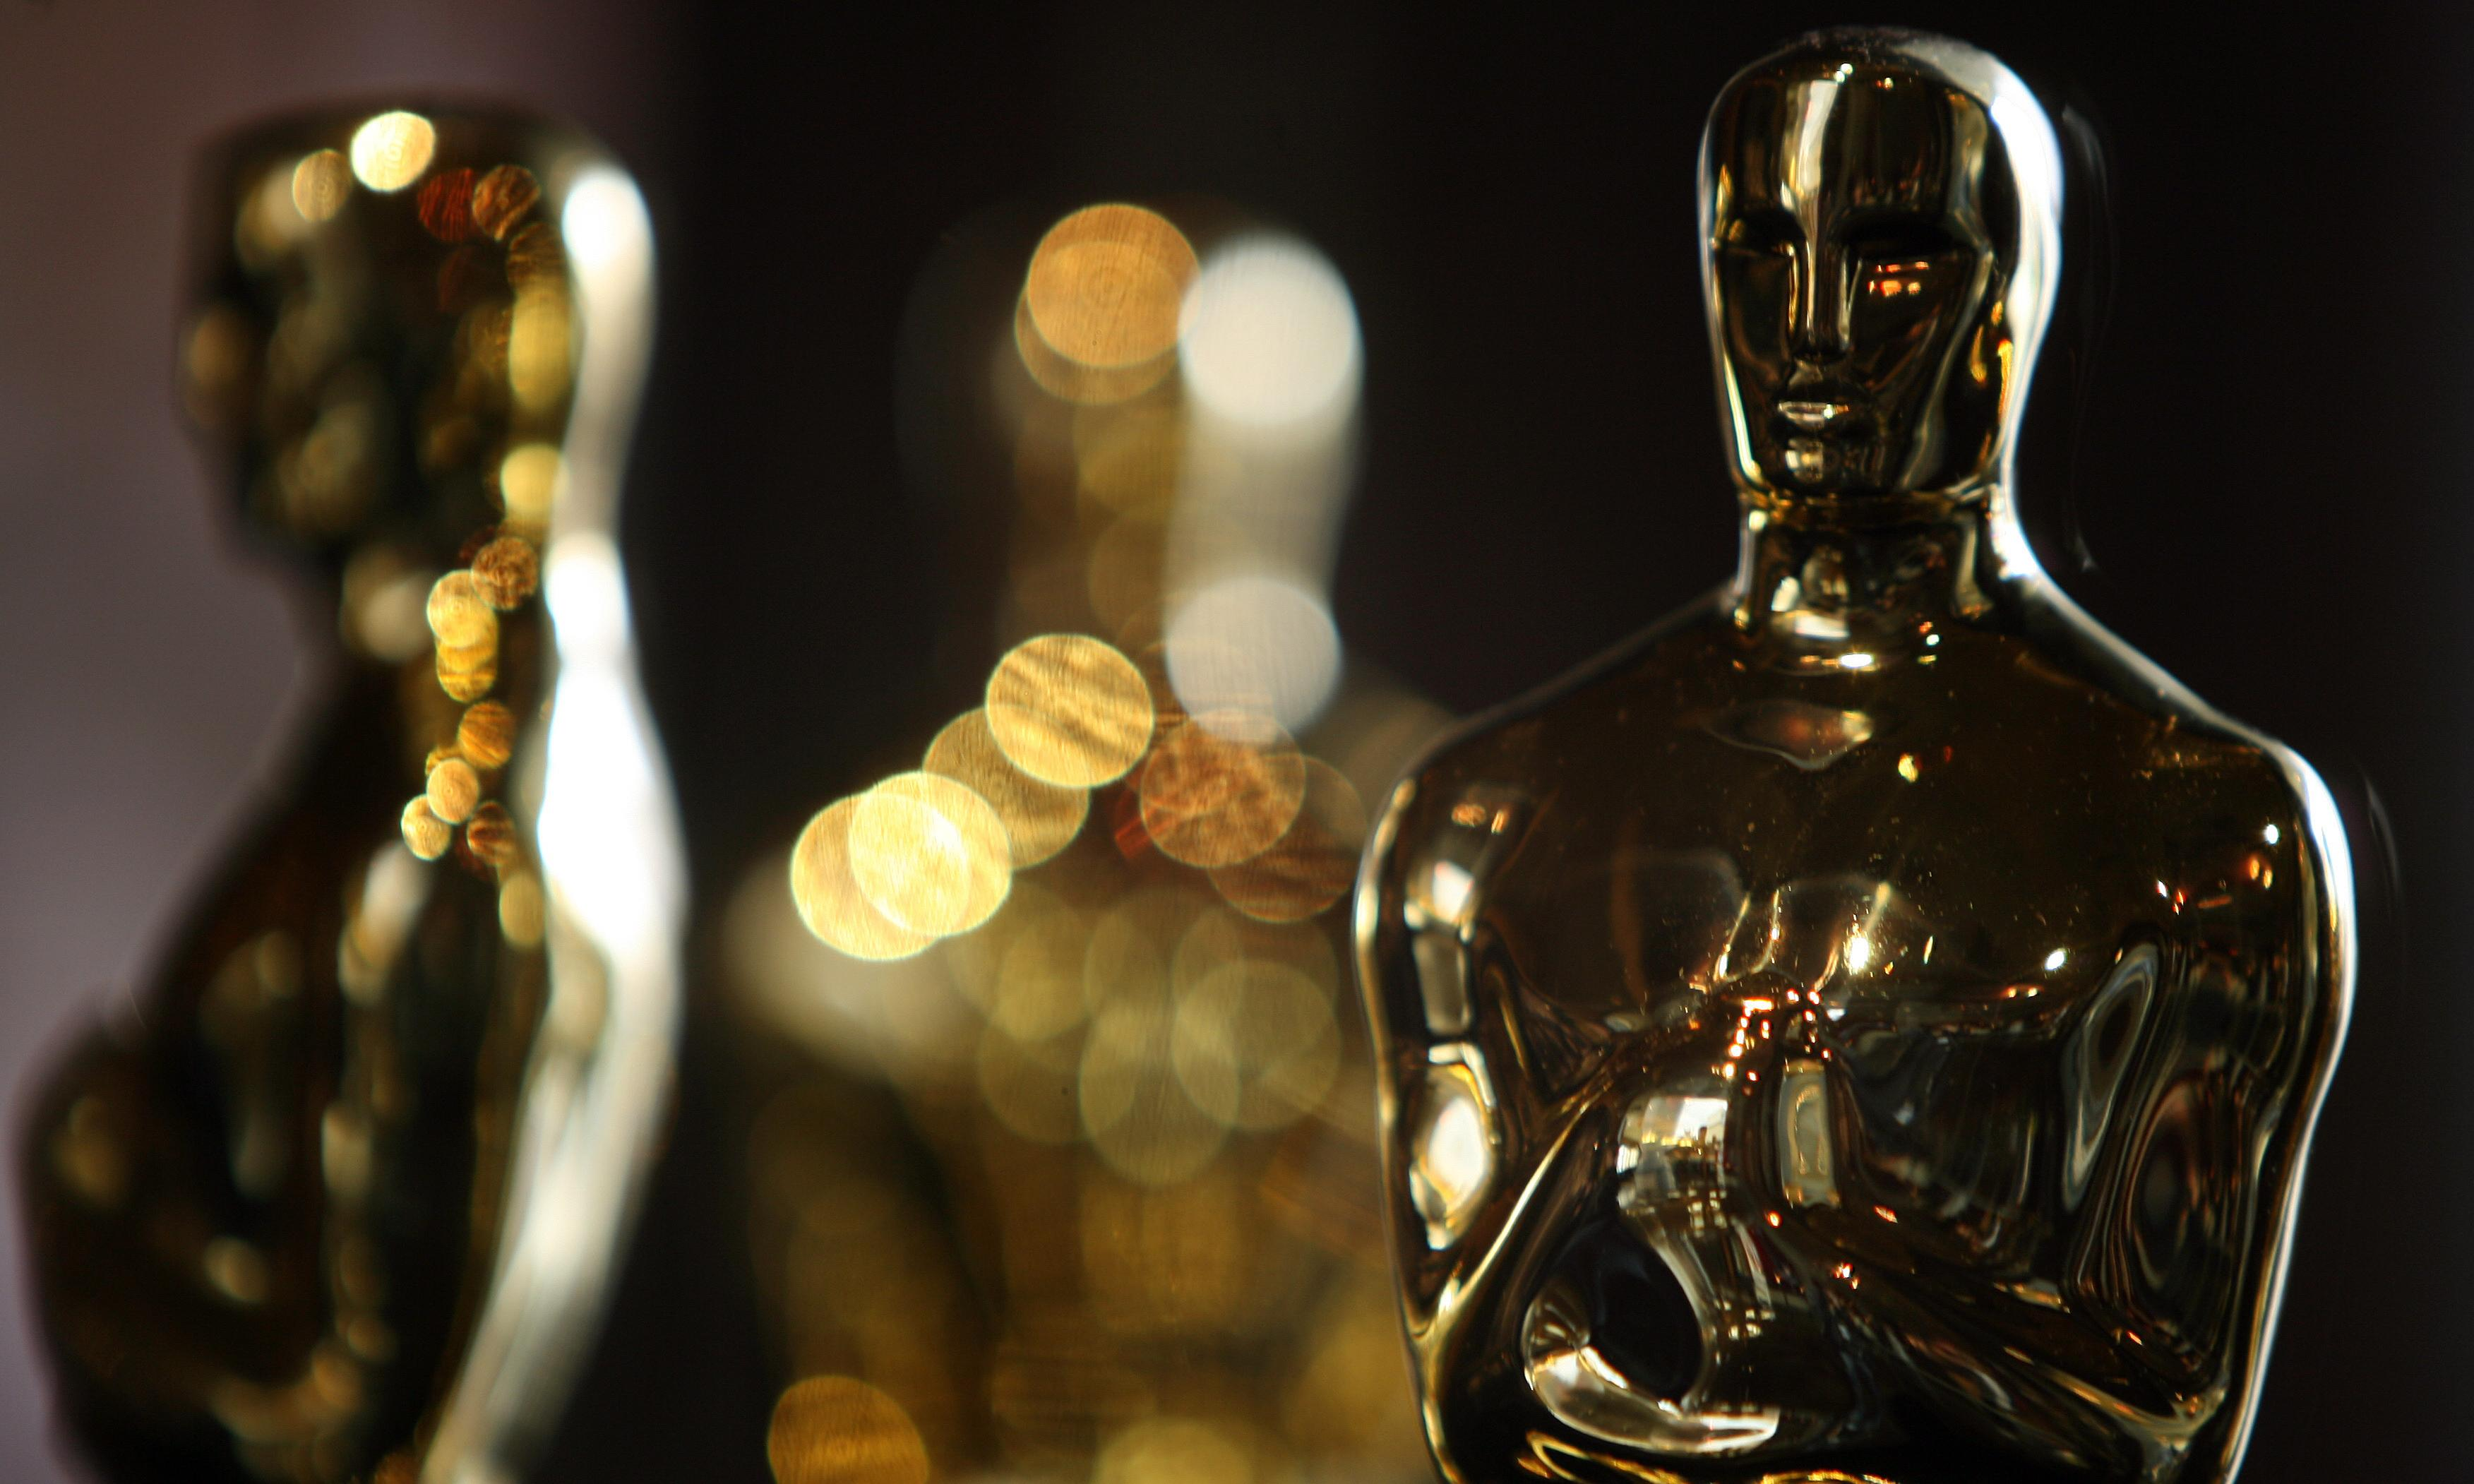 The full list of 2020 Oscar nominations